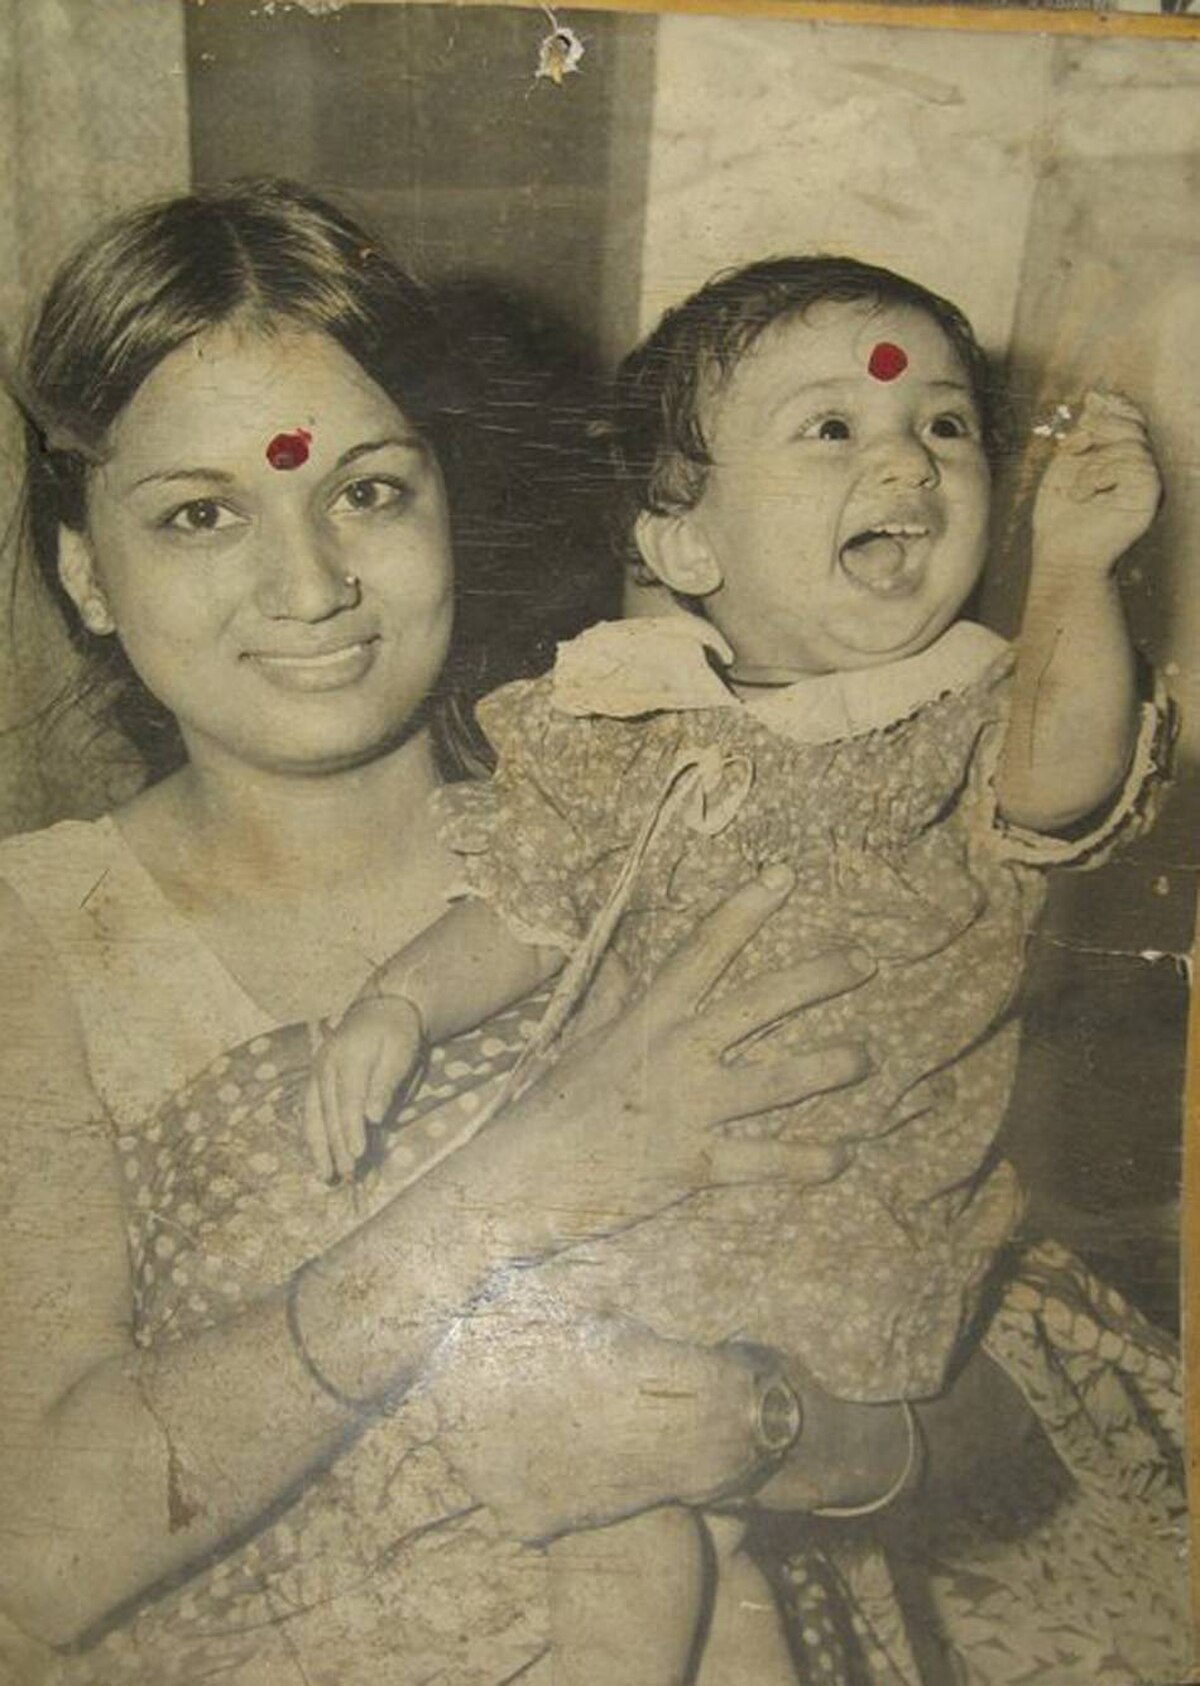 This photo was taken in 1981 in Delhi, India. We never celebrated mother's day in India. I think it is really nice to celebrate your mother every year. I plan to do something special for her this year.